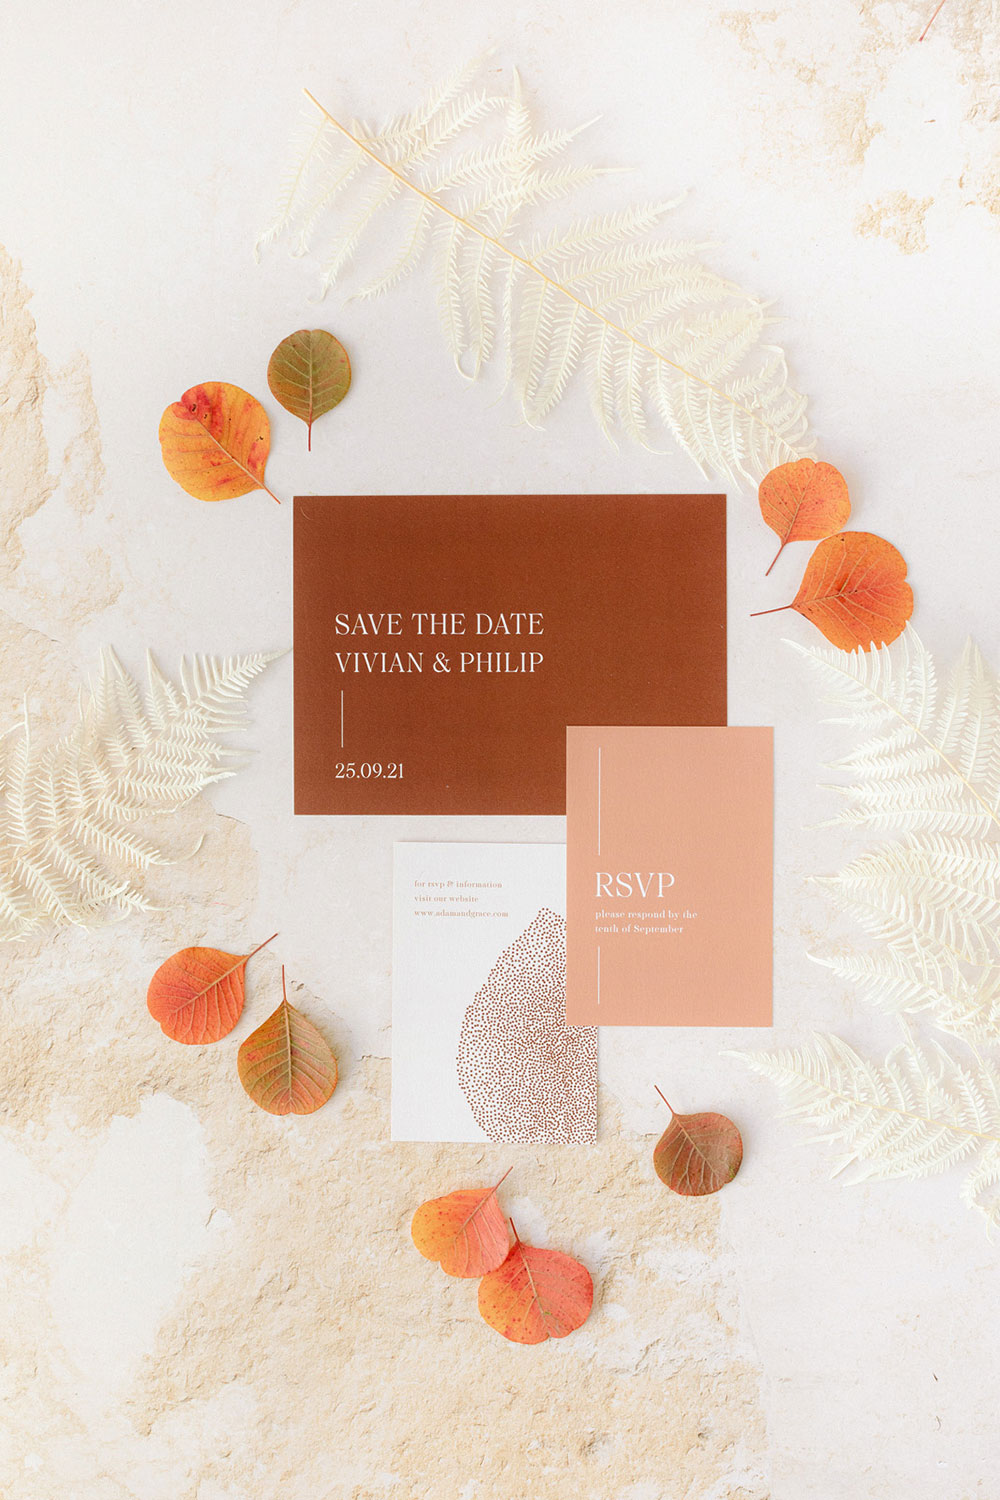 The wedding stationery suite was done in rust, blush and white, with modern lettering